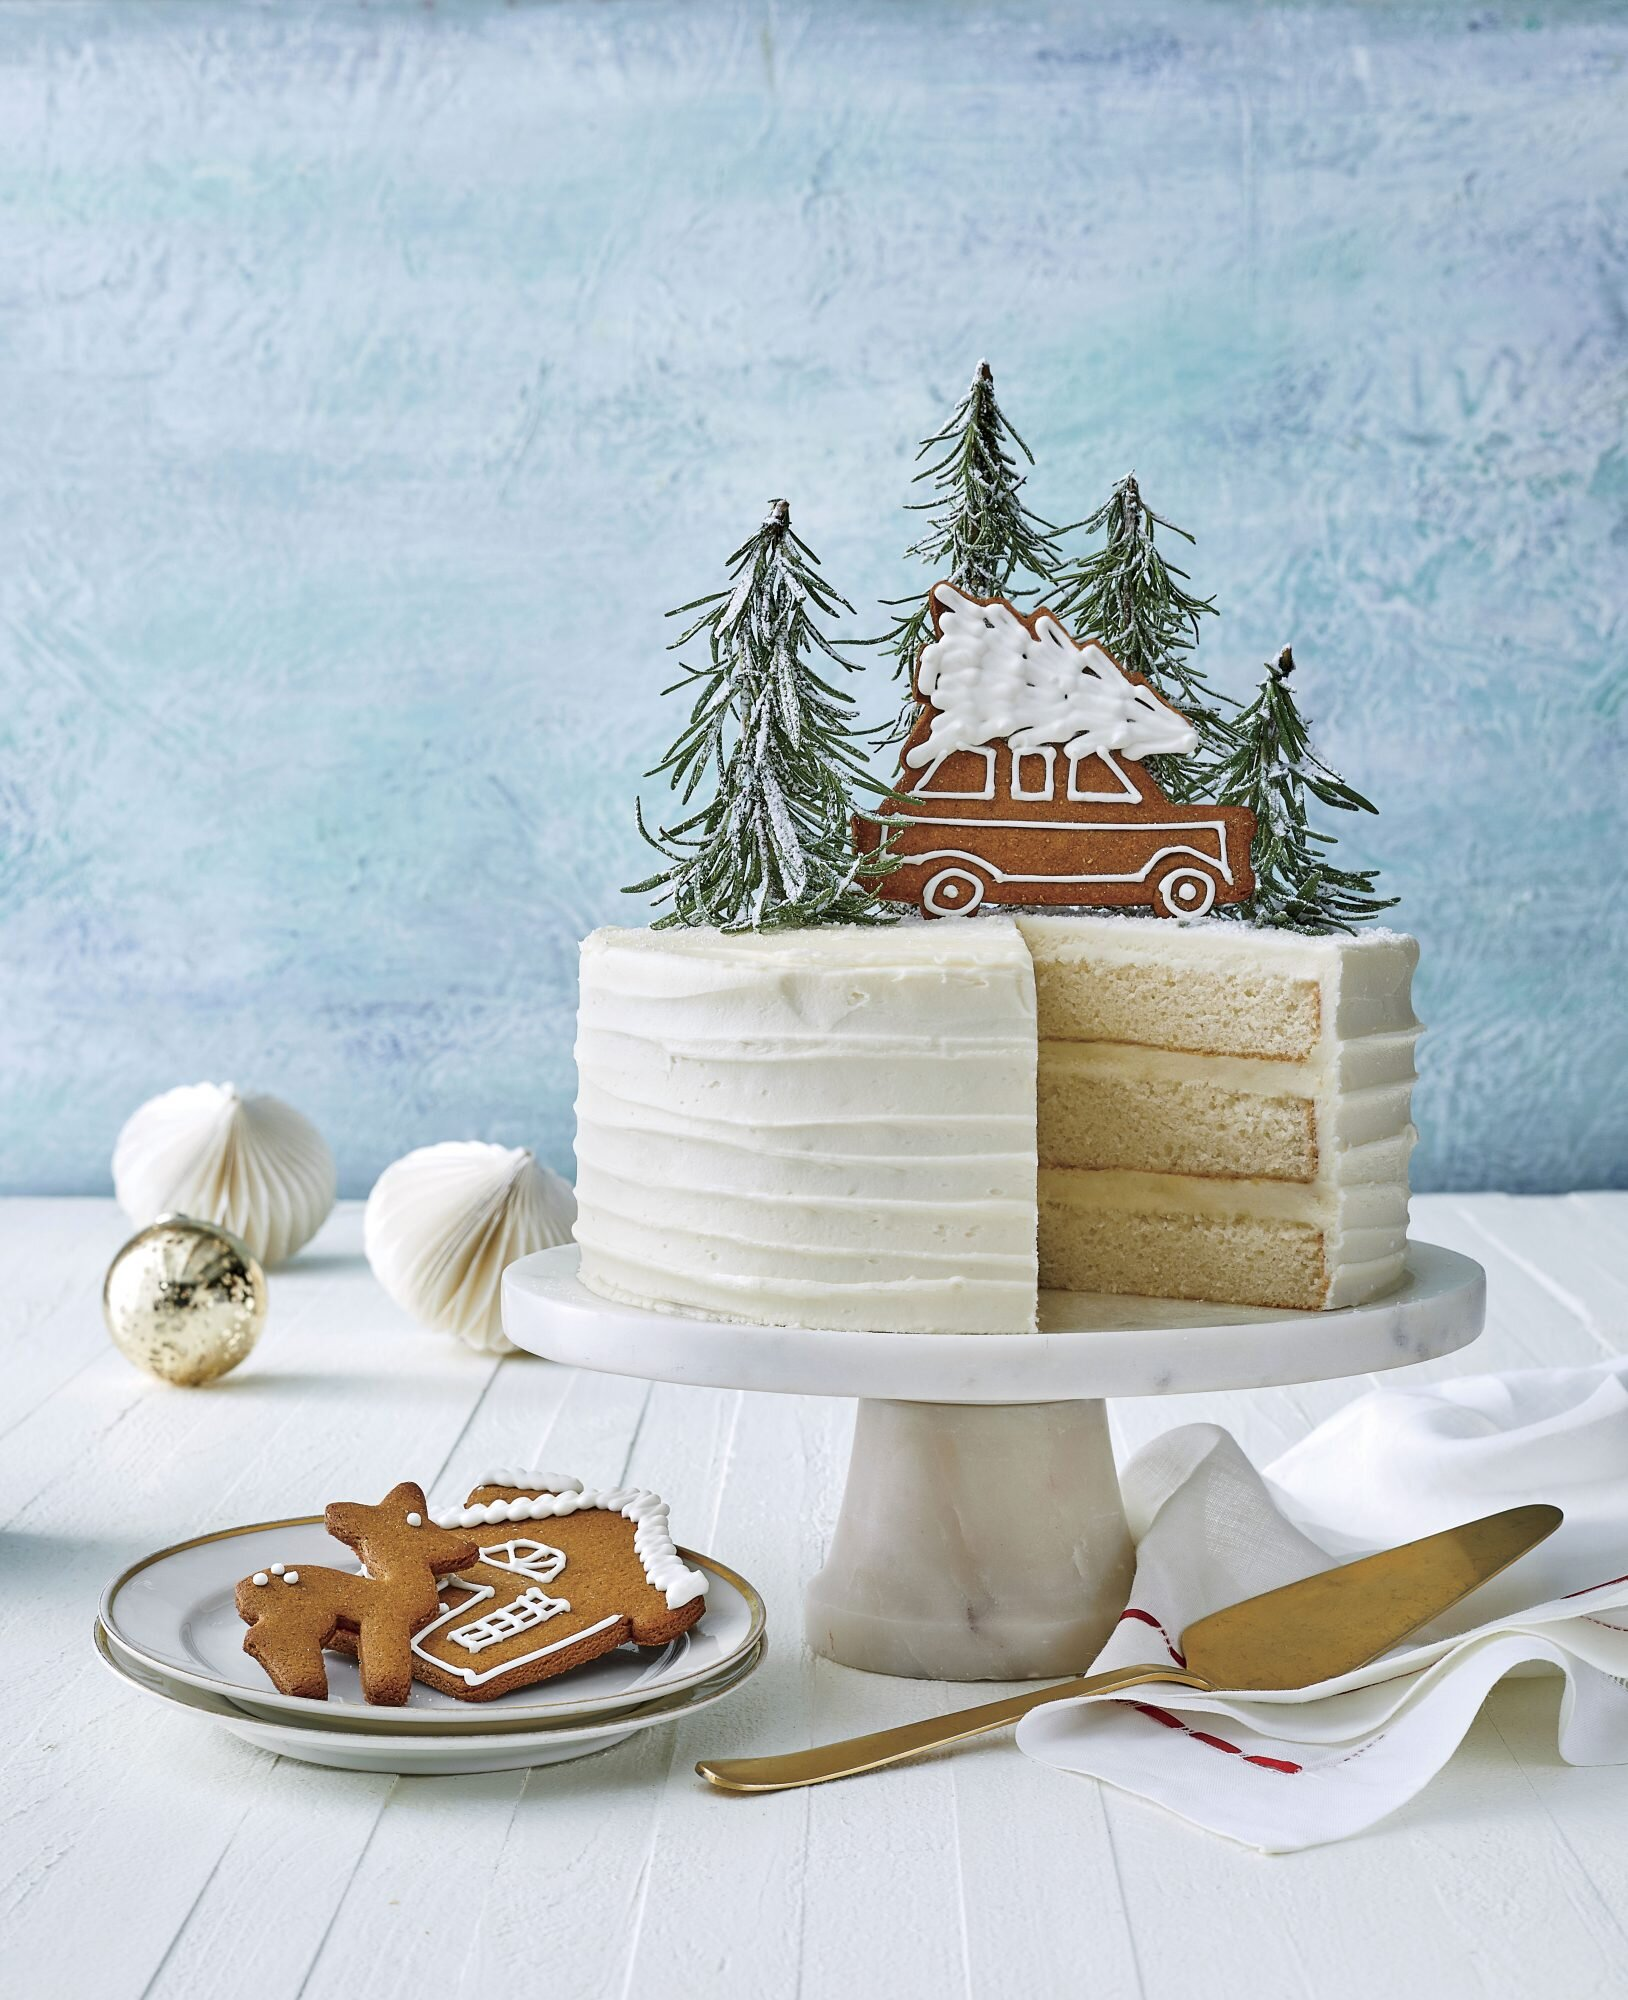 Southern Living Dec 2020 Christmas Buttermints Best Ever Christmas Recipes to Make This Holiday Season | Southern